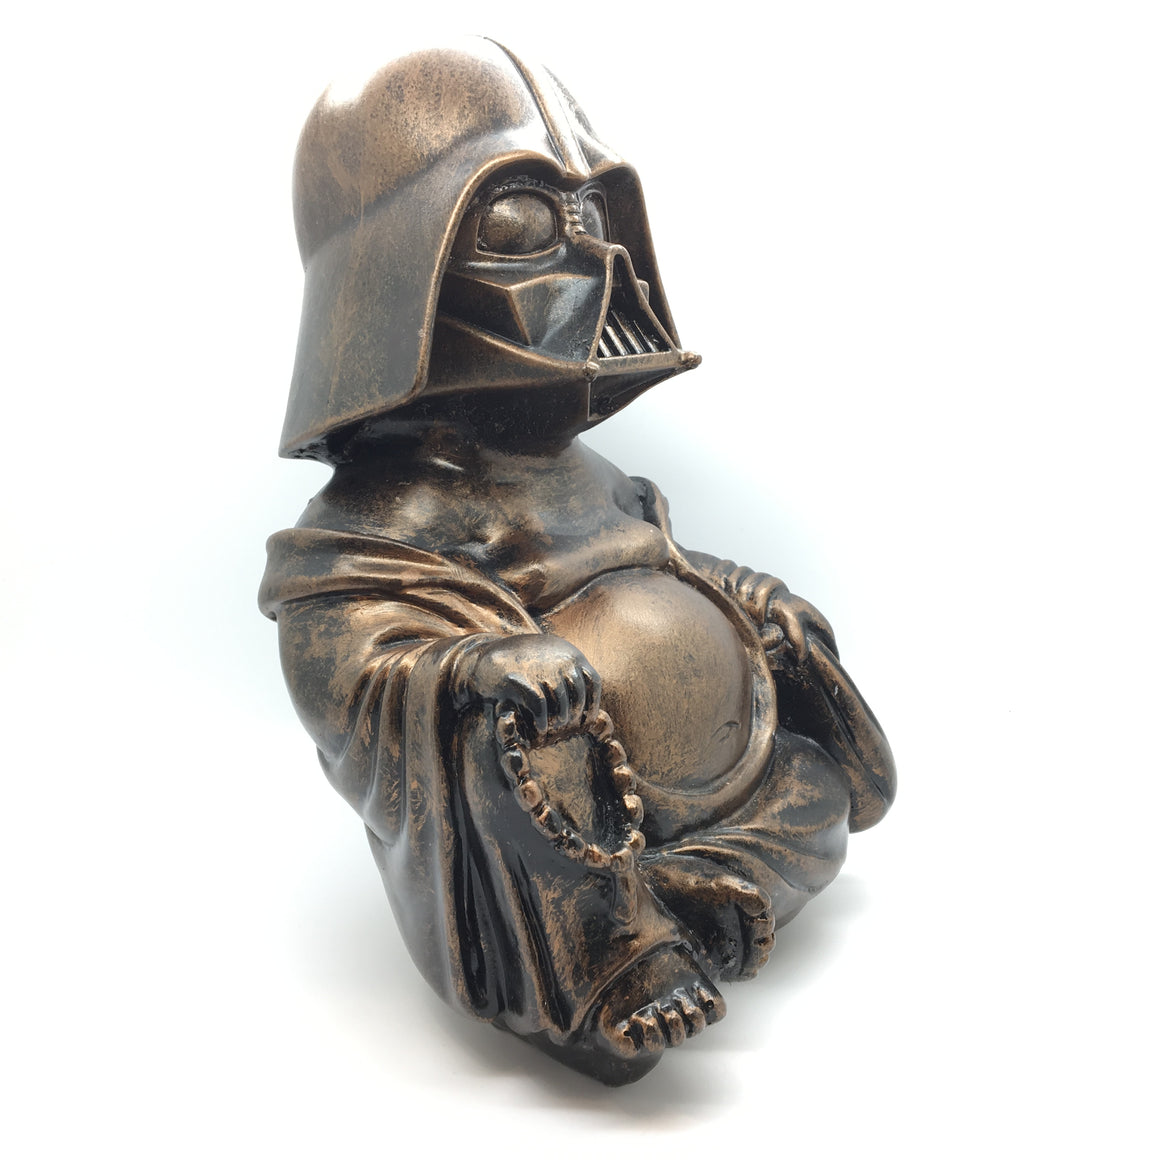 Darth Vader Buddha Large 9 inch Art Toy Figure by Modulicious